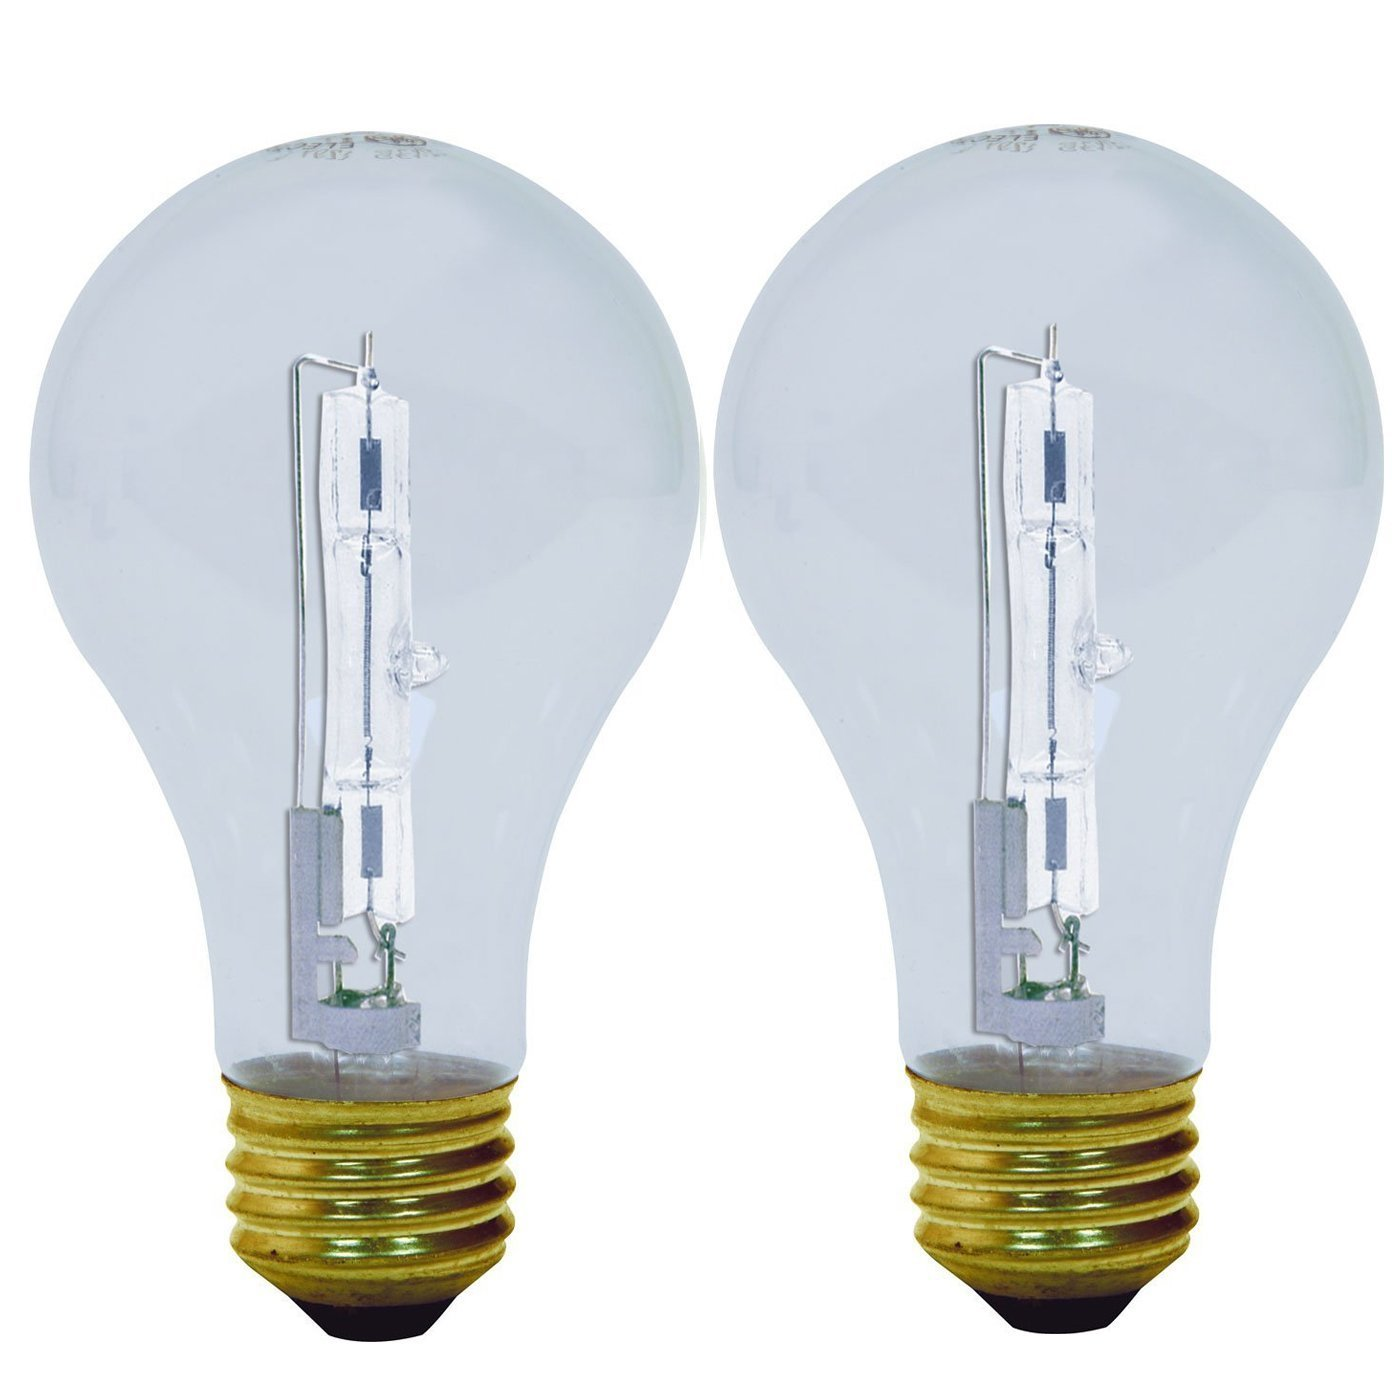 92 How Many Lumens Is A 60 Watt Light Bulb Ge Lighting 74437 Energy Smart Cfl 15 Watt 60